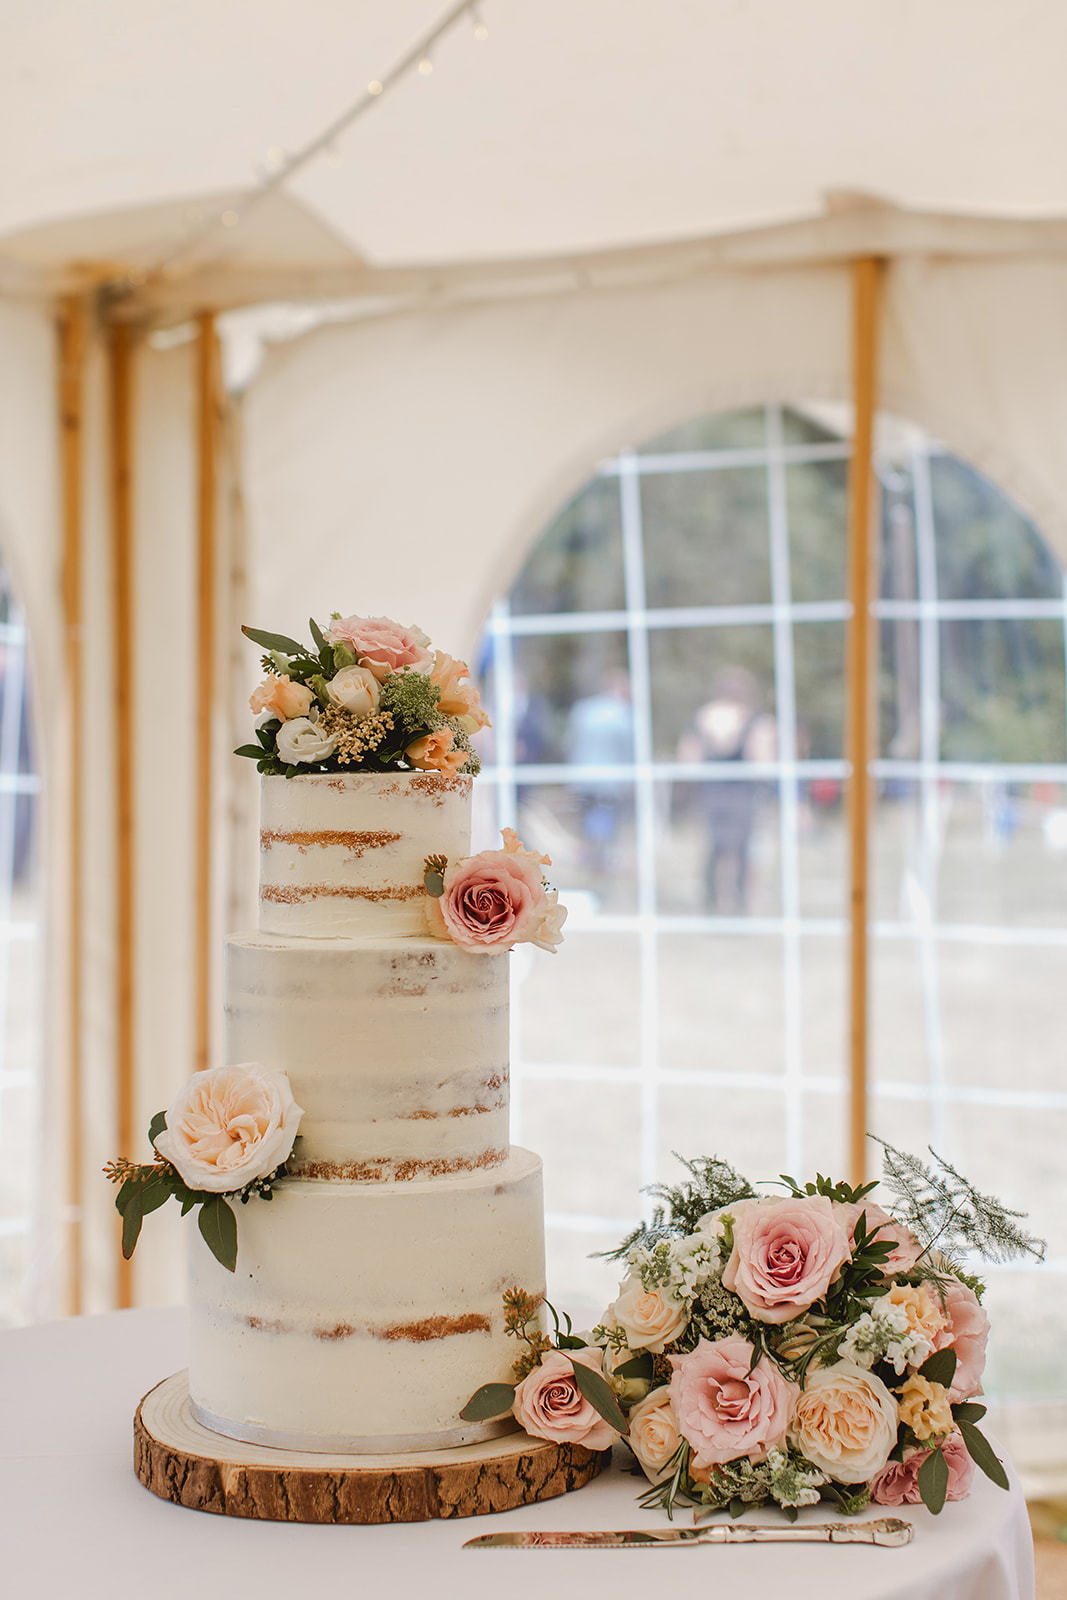 Eggington House marquee wedding_semi naked cake decorated with flowers